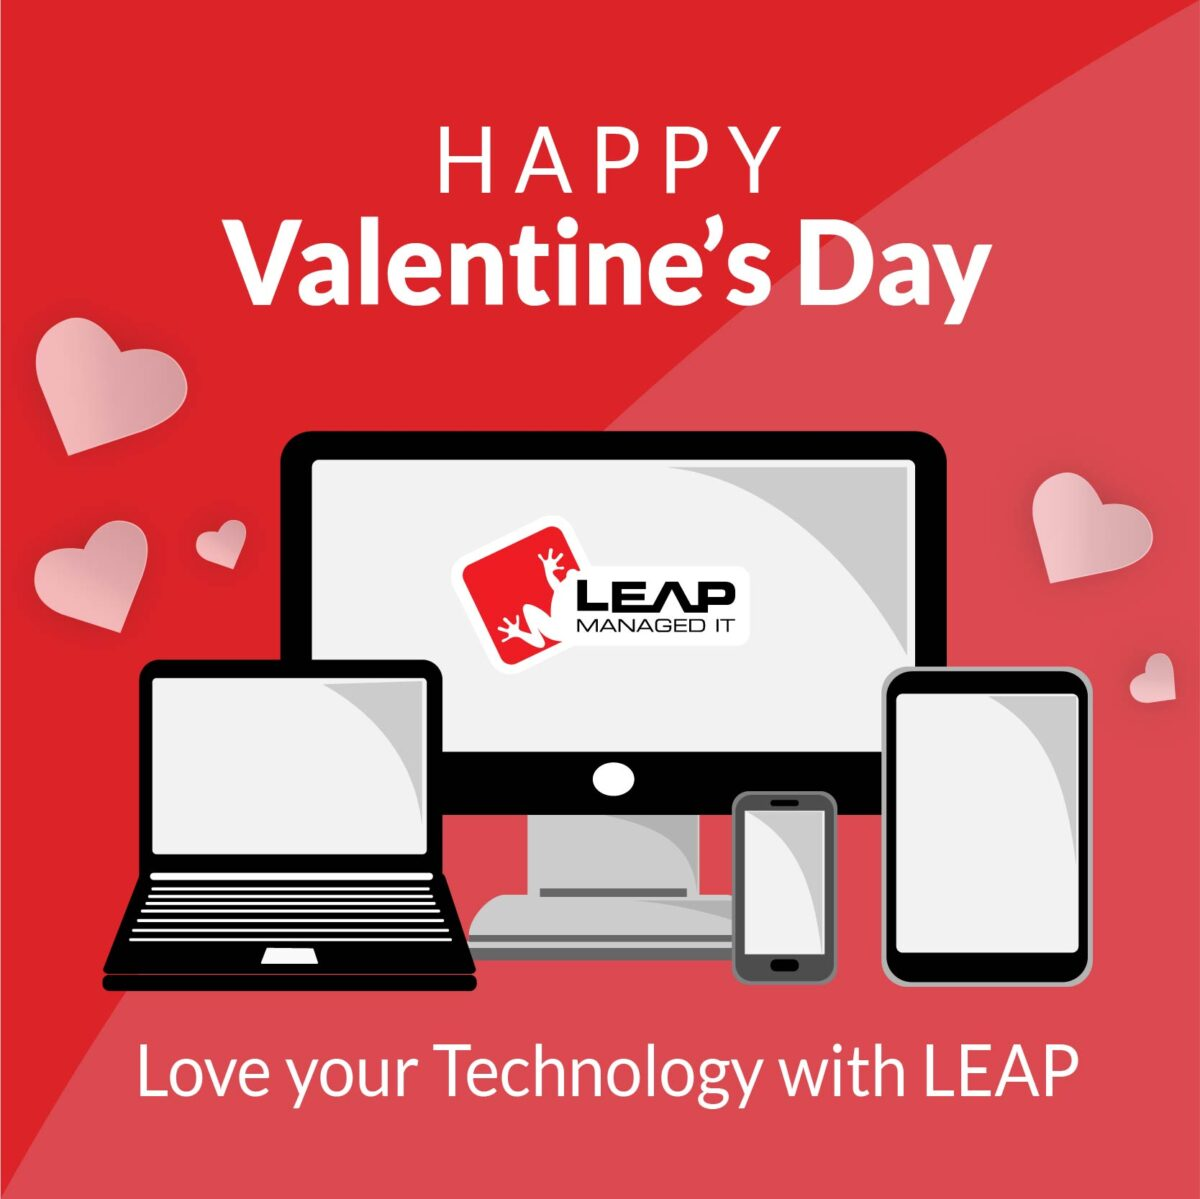 Indianapolis Based Managed Service and IT Provider Leap Managed IT